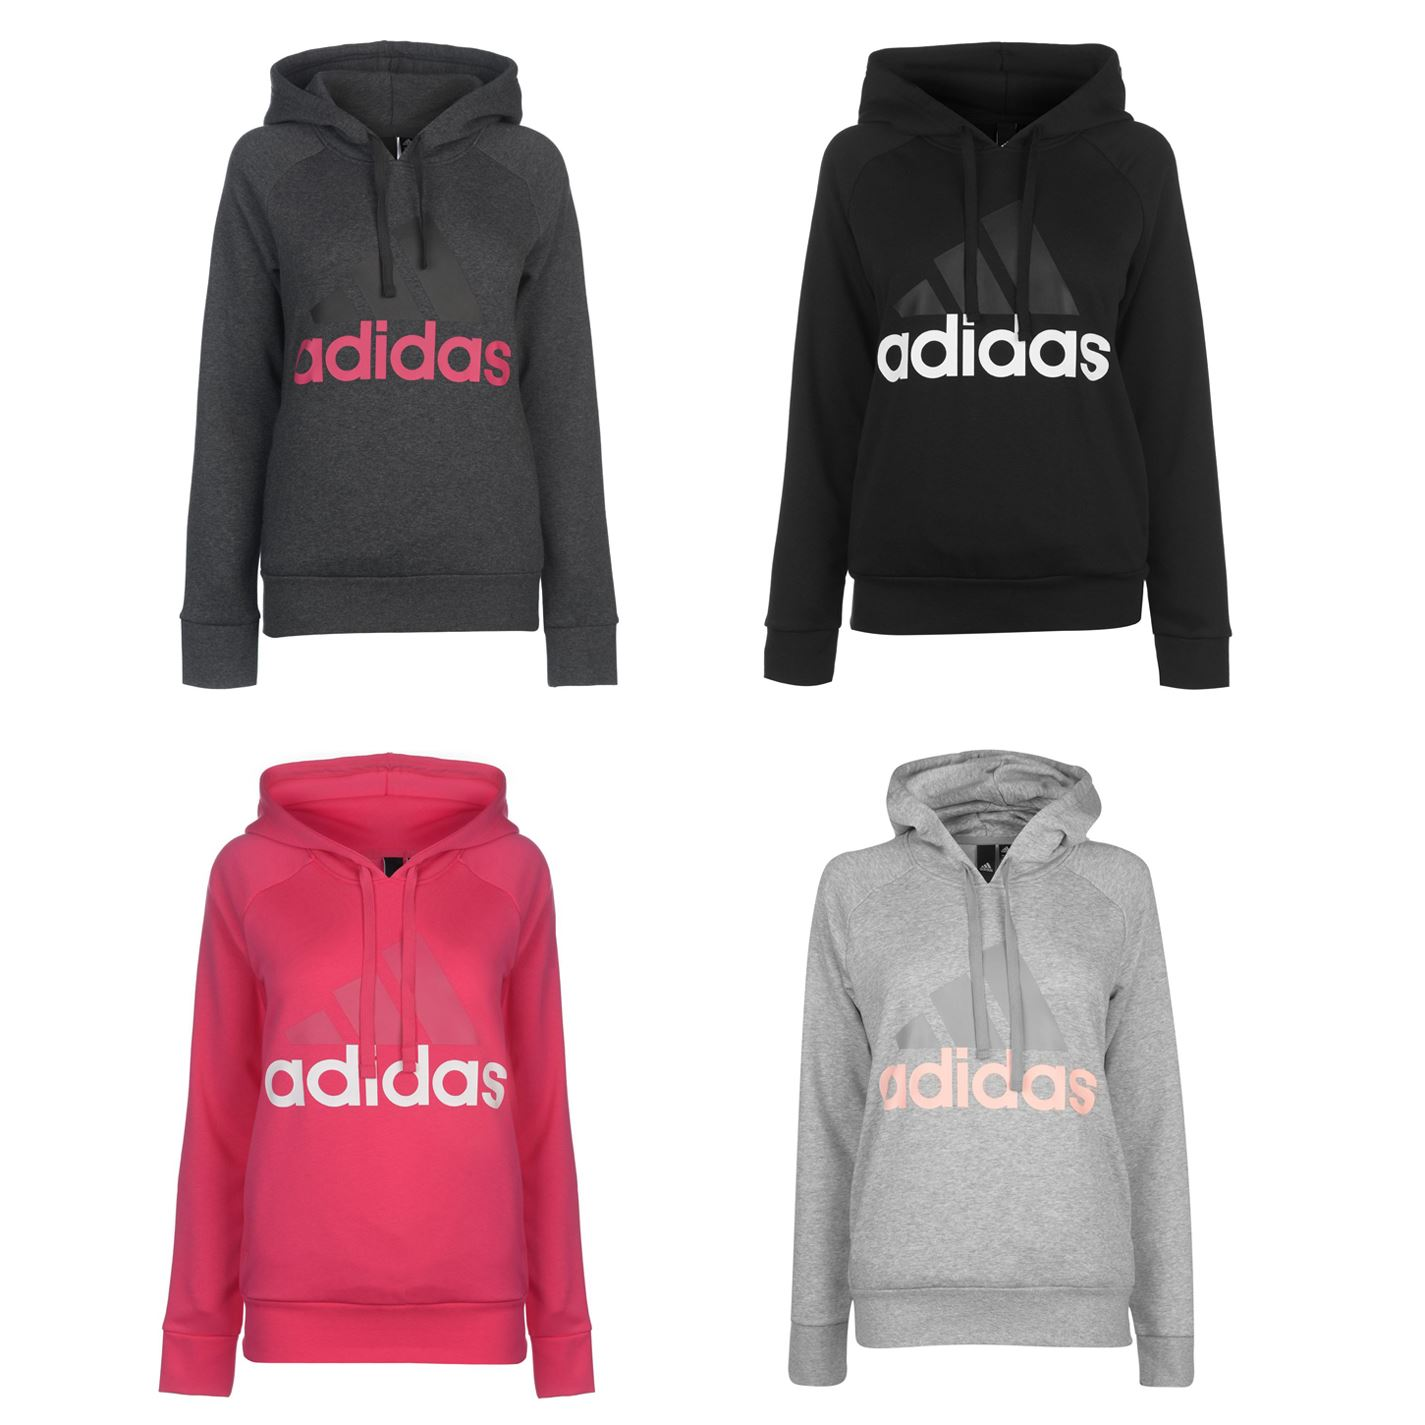 Details about adidas Linear OTH Hoody Ladies Drawstring Hooded Top Outerwear